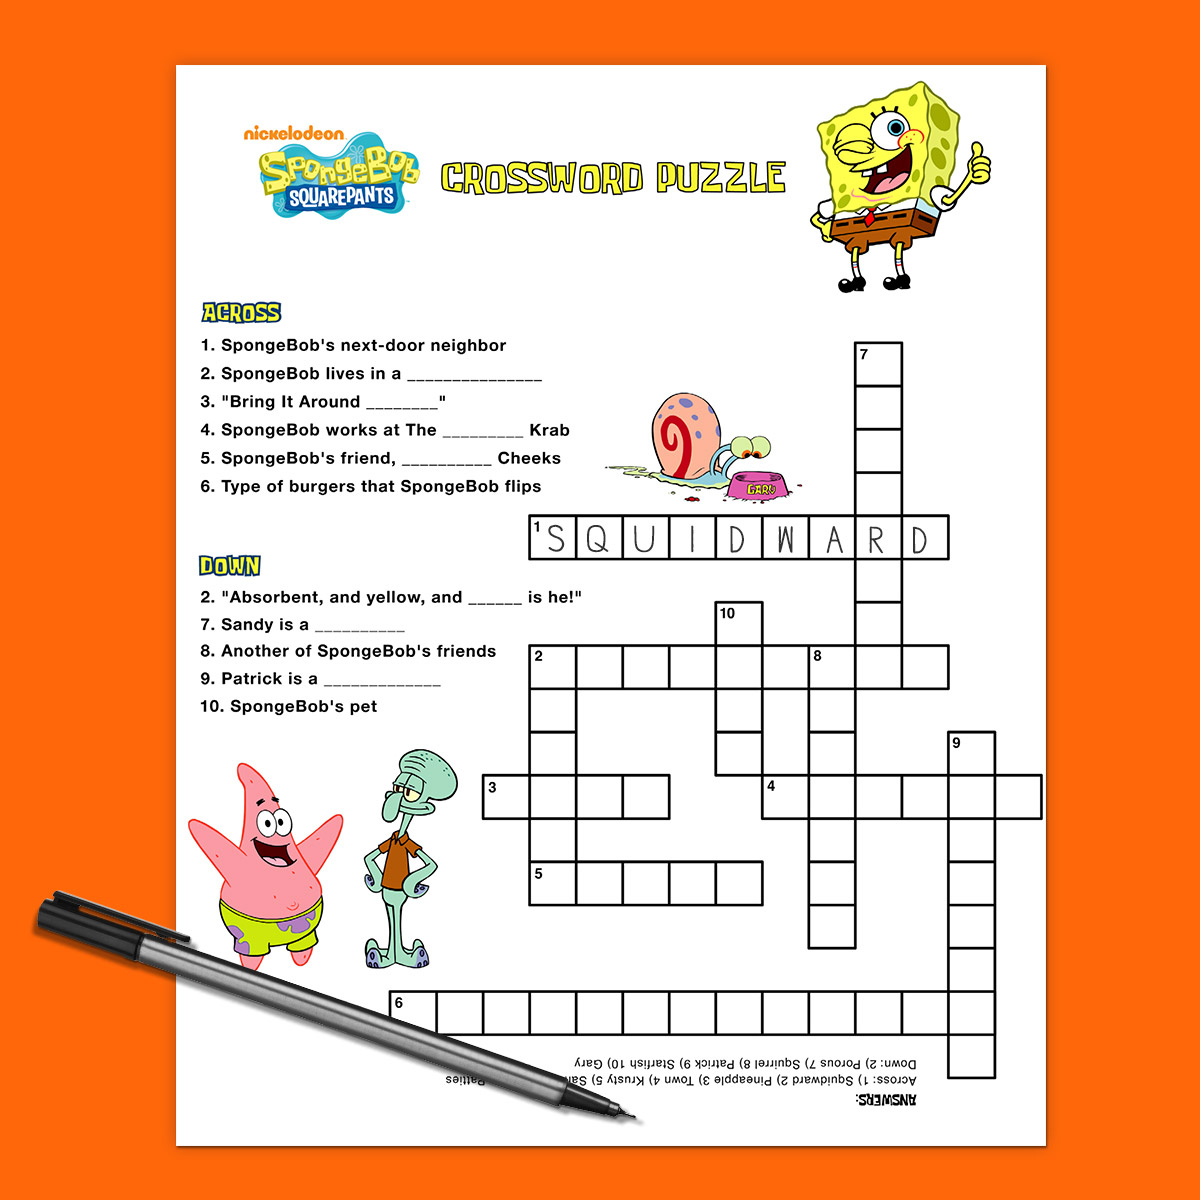 Spongebob Crossword Puzzle | Nickelodeon Parents - Birthday Crossword Puzzle Printable